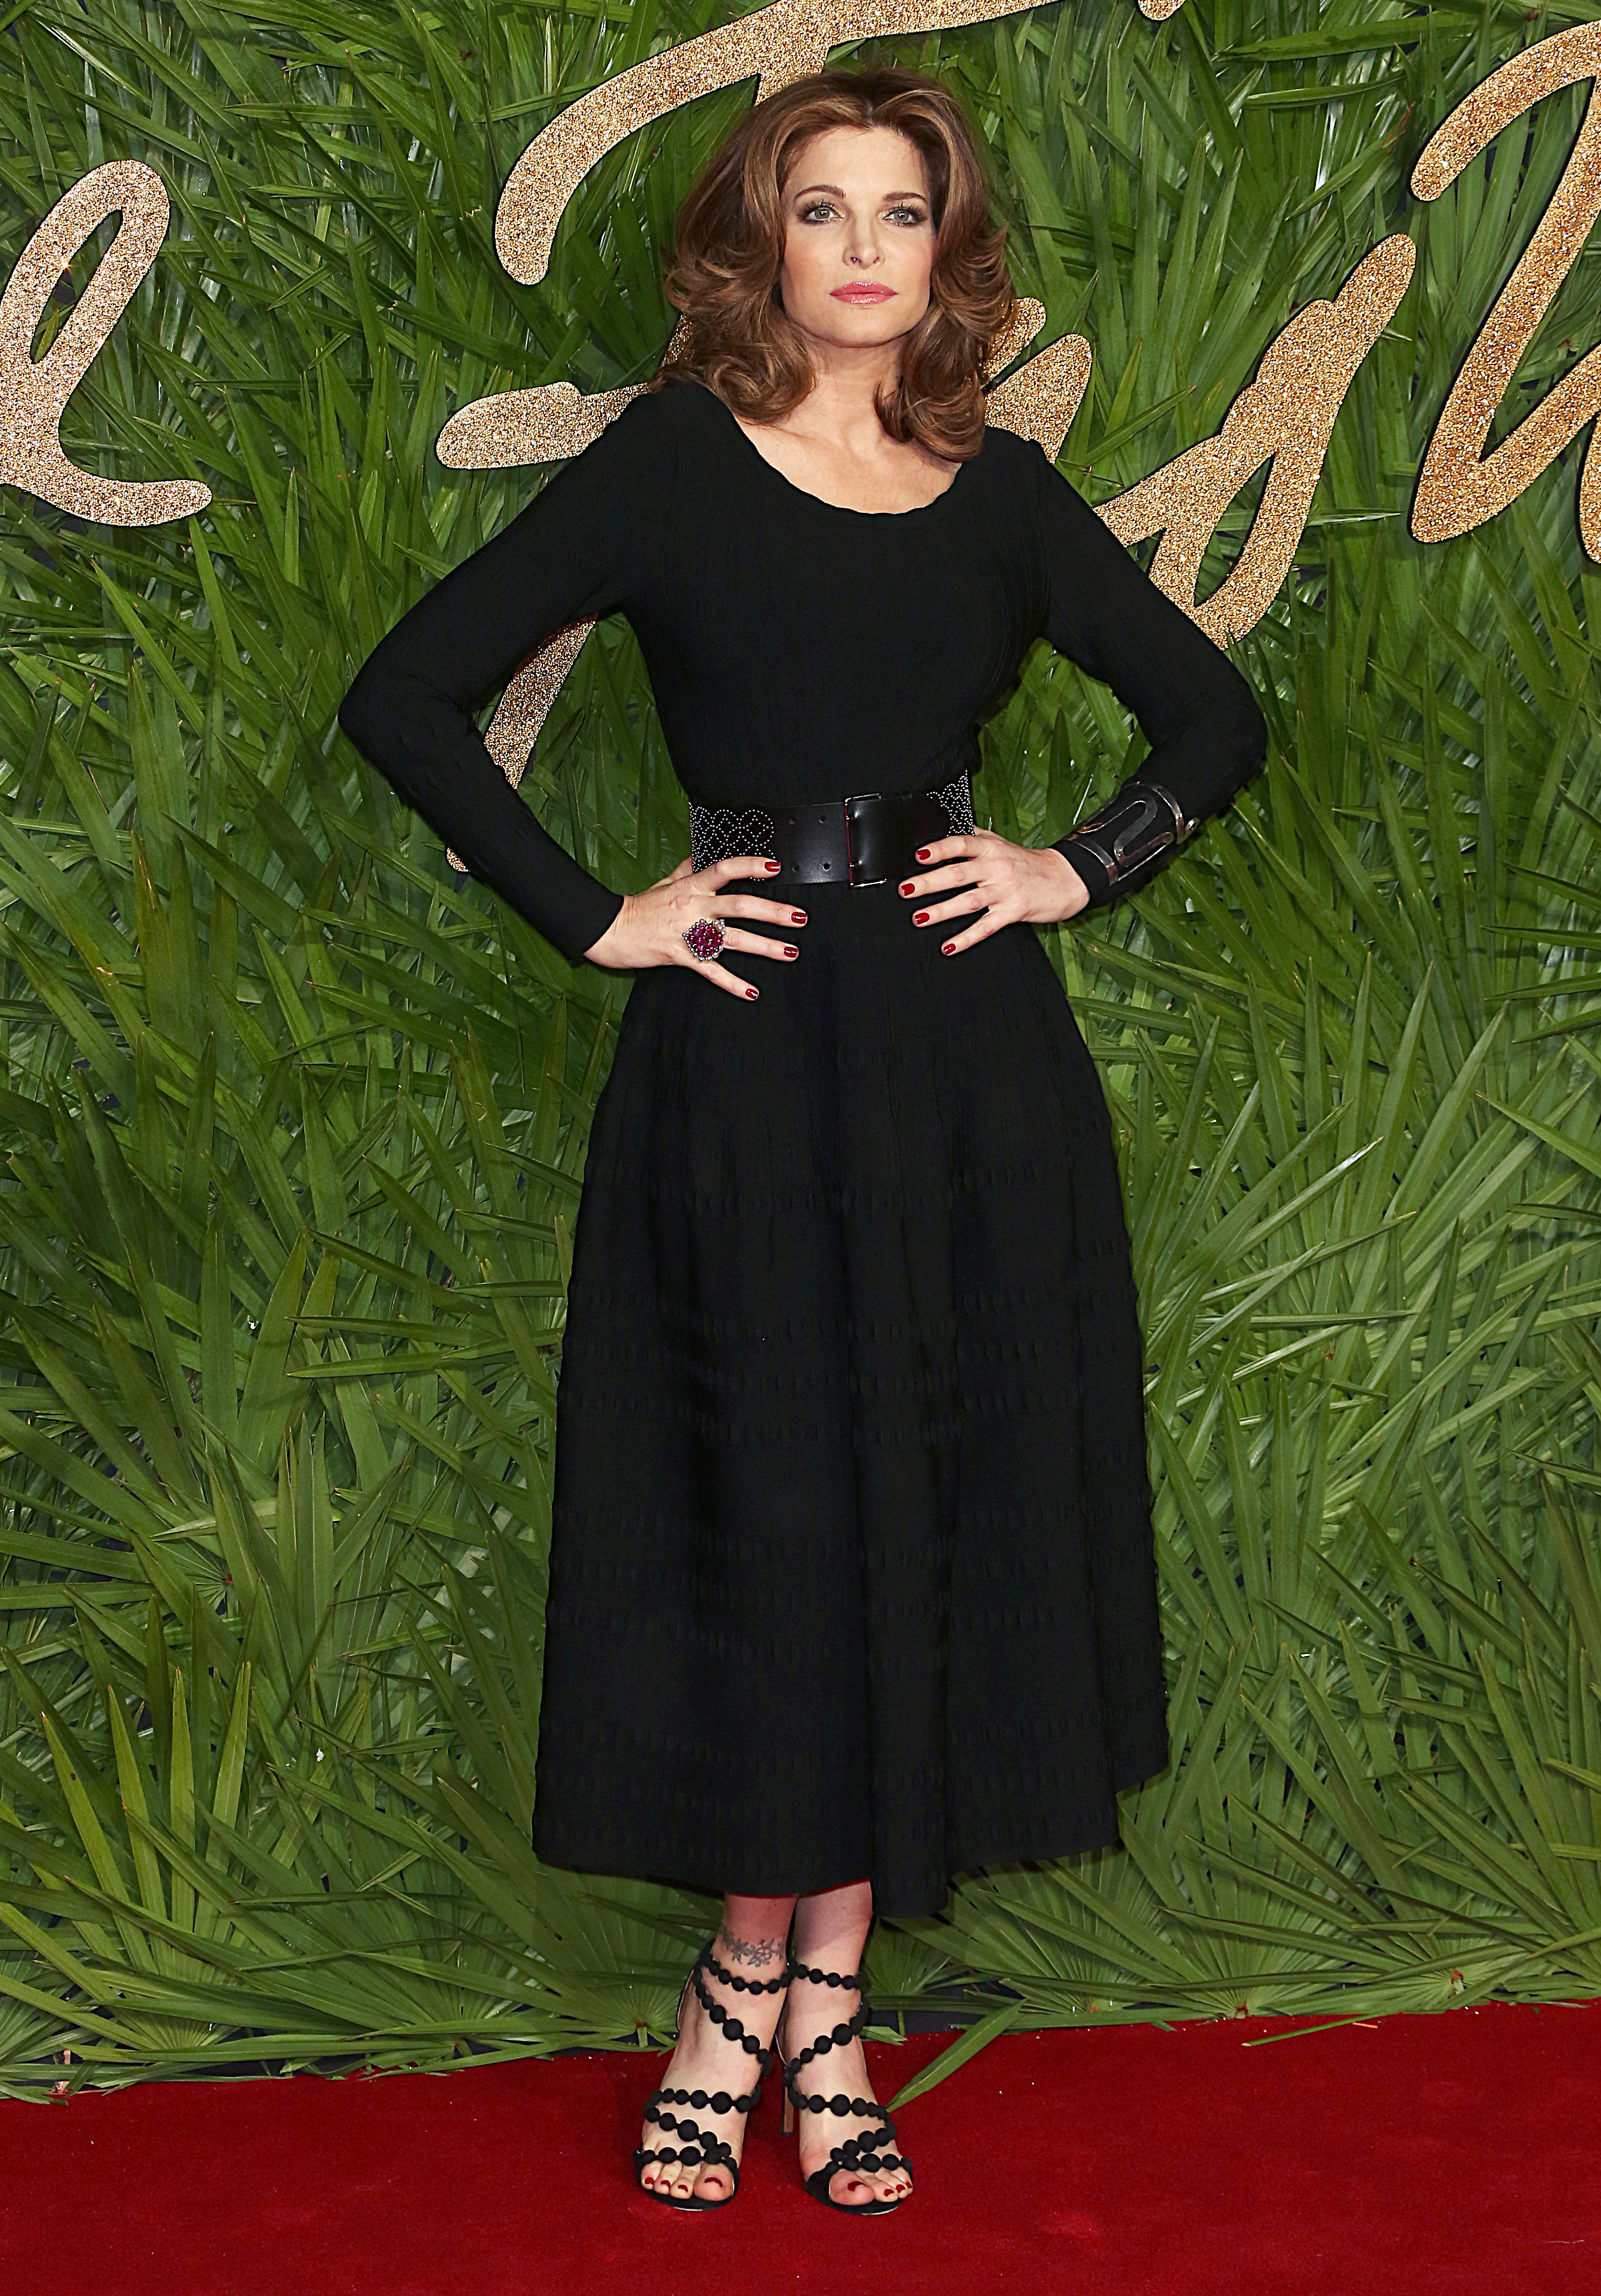 The Fashion Awards 2017, Royal Albert Hall, London UK, 04 December 2017, Photo by Brett D. Cove <P> Pictured: Stephanie Seymour <B>Ref: SPL1632930  051217  </B><BR/> Picture by: Brett D. Cove / Splash News<BR/> </P><P> <B>Splash News and Pictures</B><BR/> Los Angeles:310-821-2666<BR/> New York:212-619-2666<BR/> London:870-934-2666<BR/> <span id=